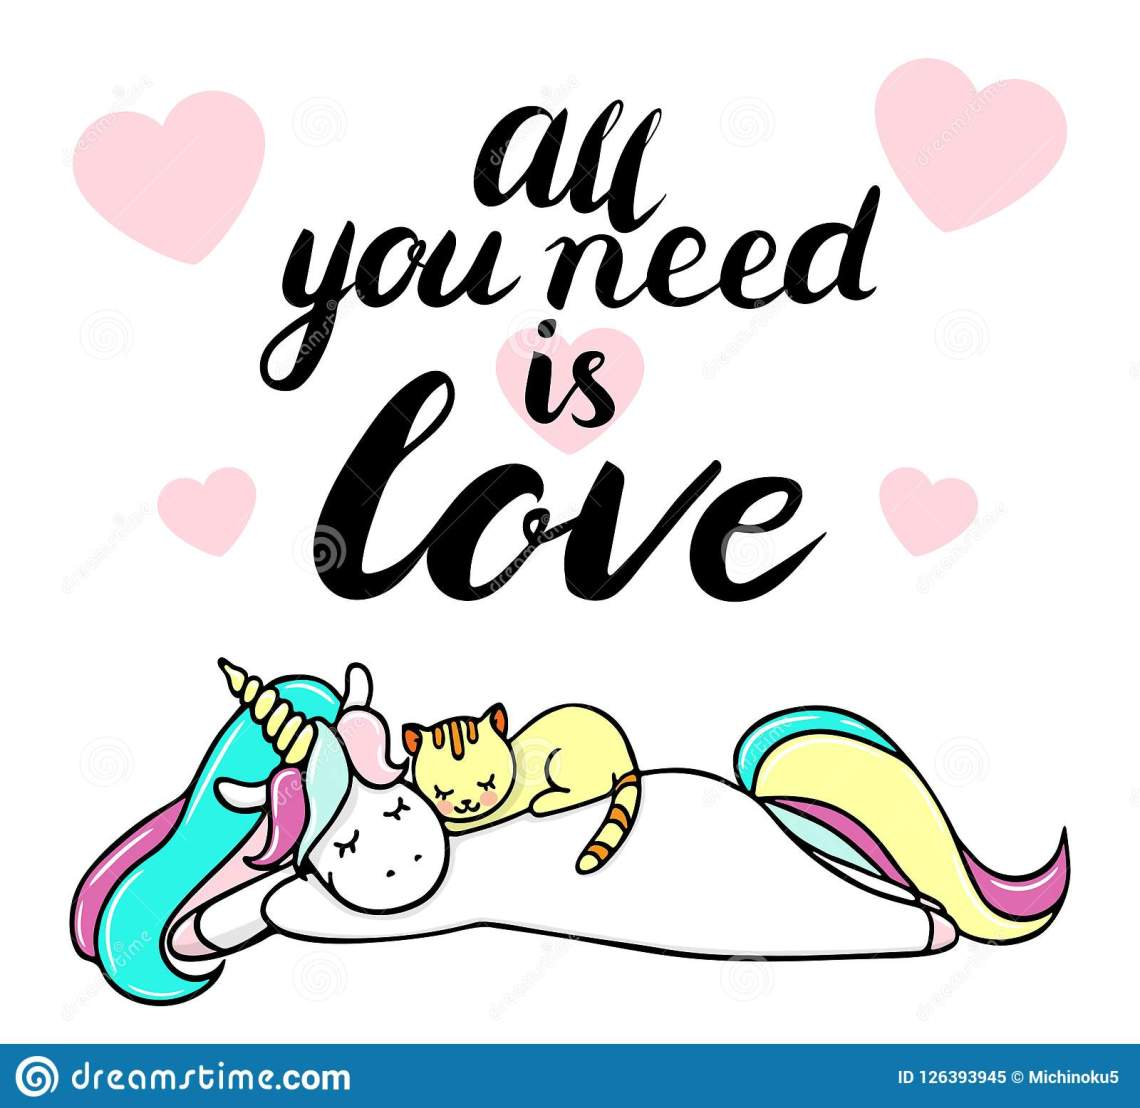 Download Cute Unicorn With A Cat. All You Need Is Love Text Stock ...